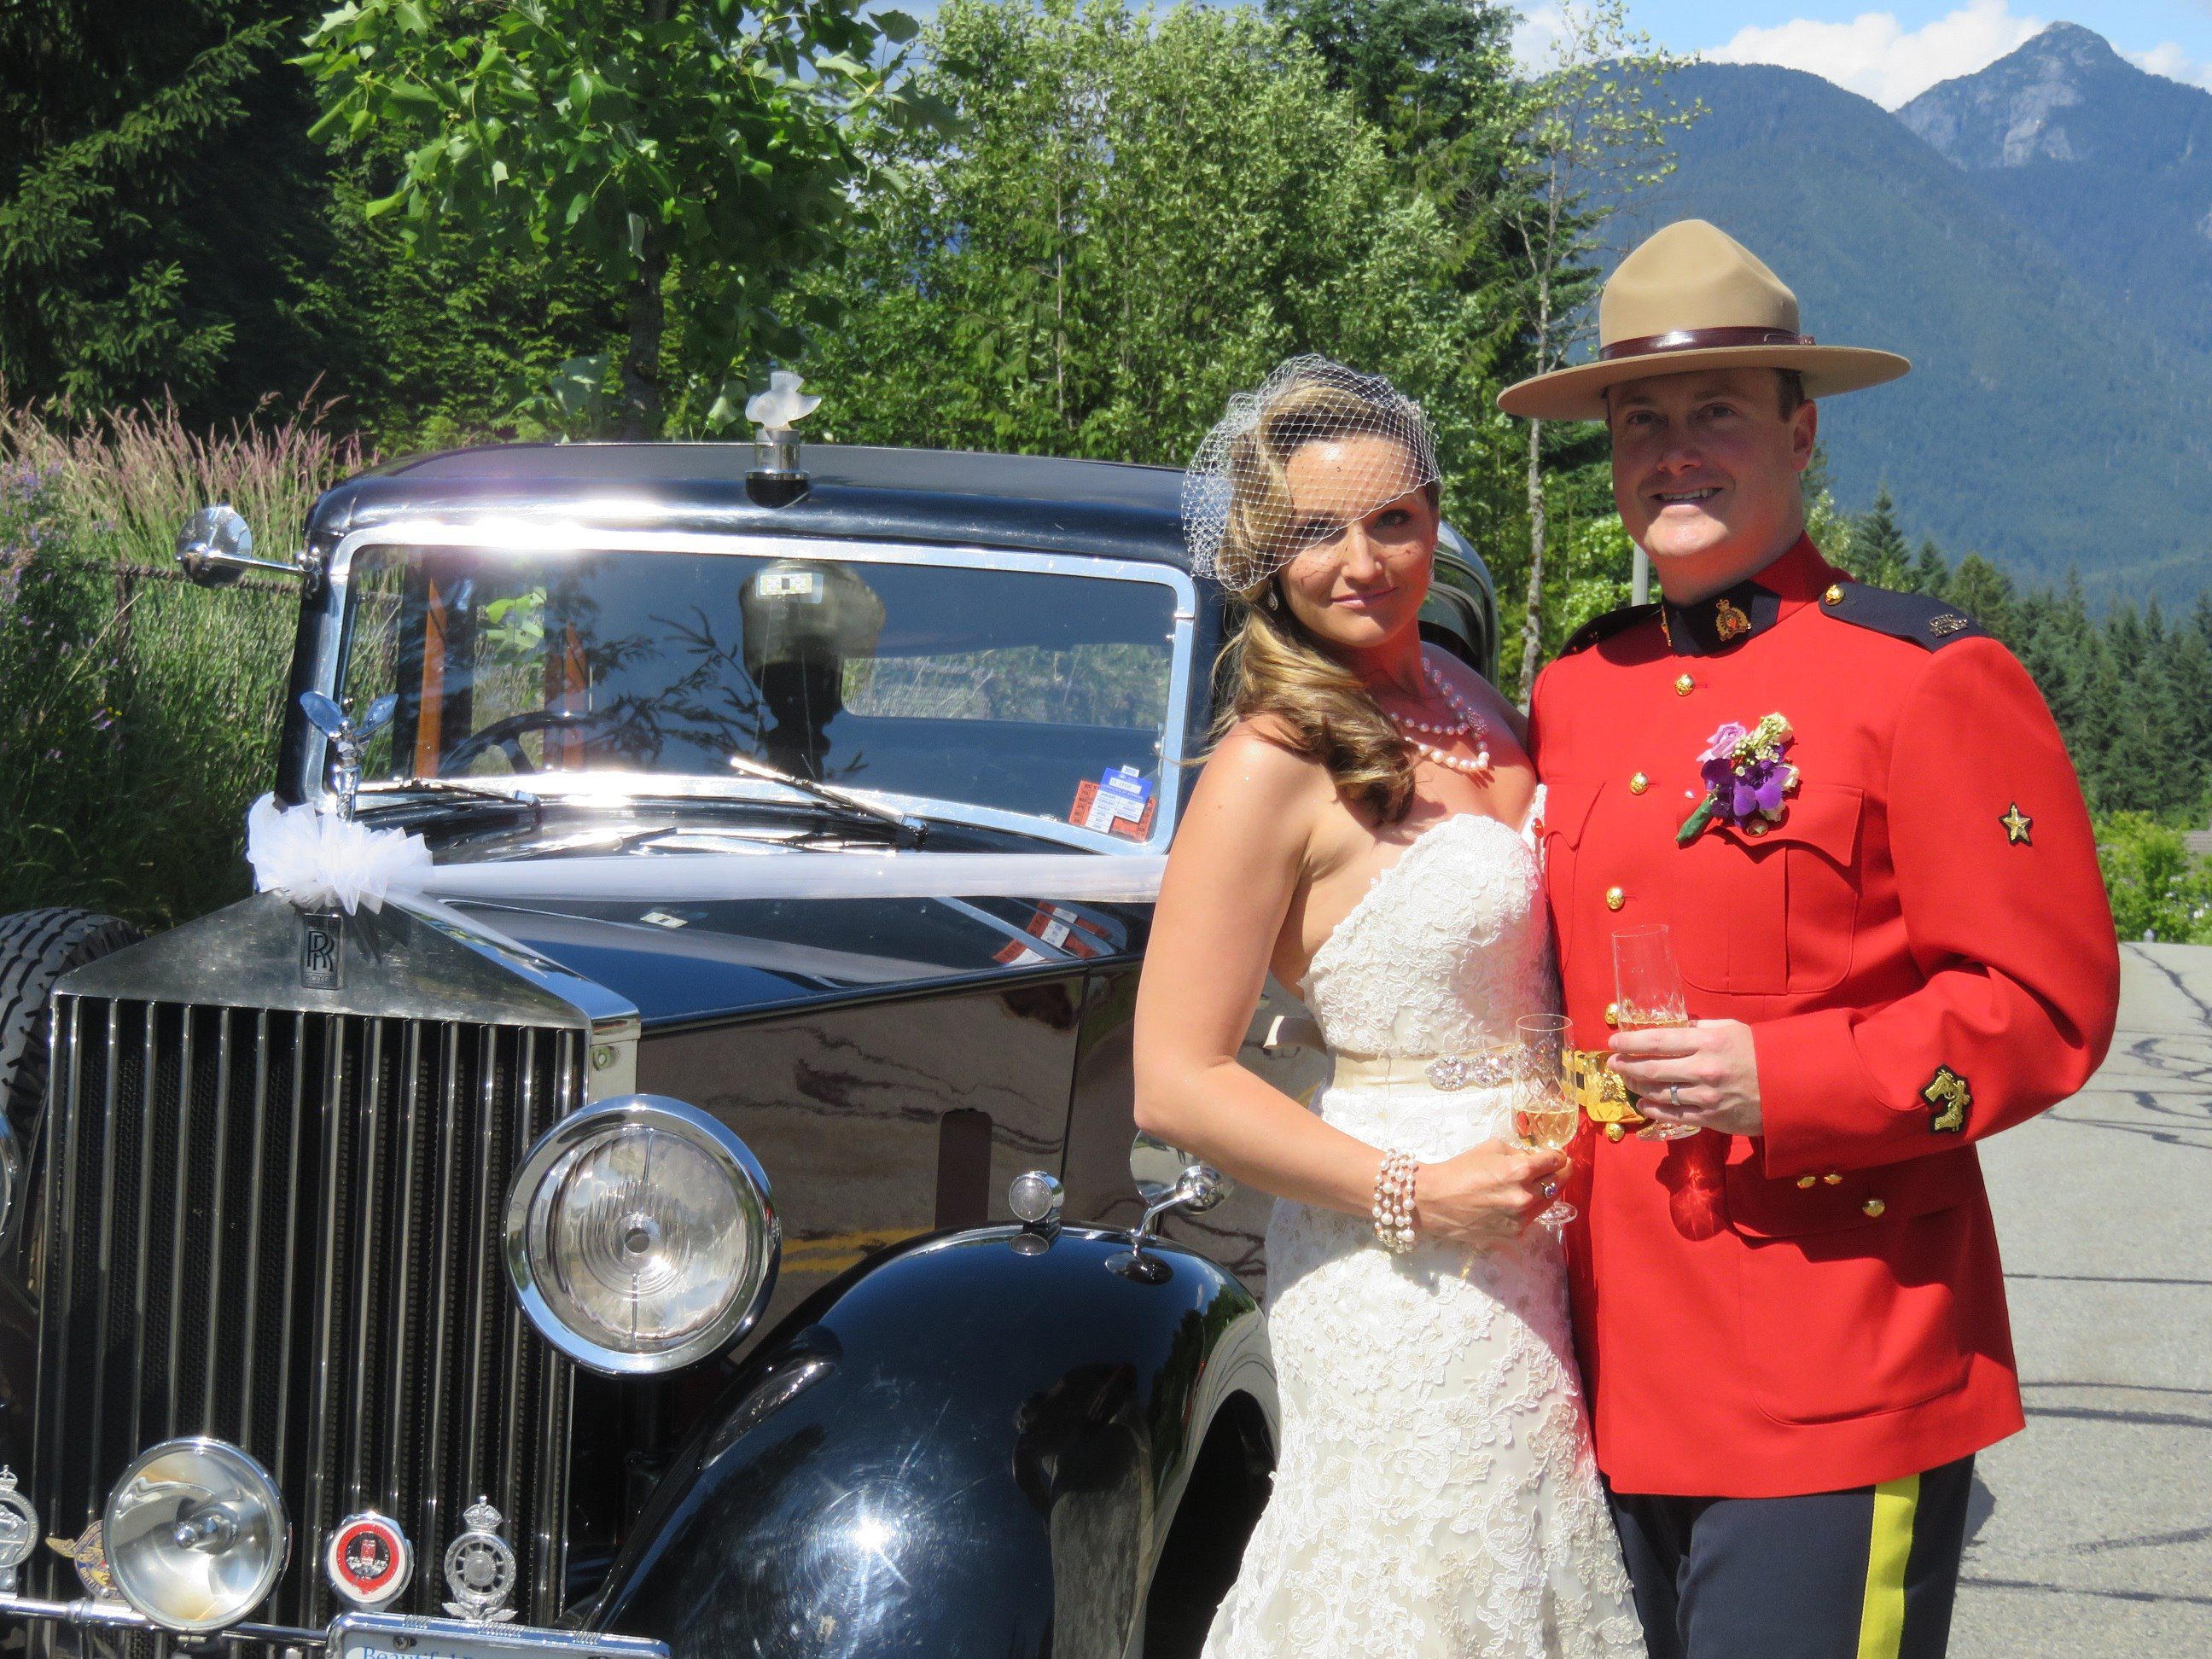 vintage-wedding-car-rcmp-wedding